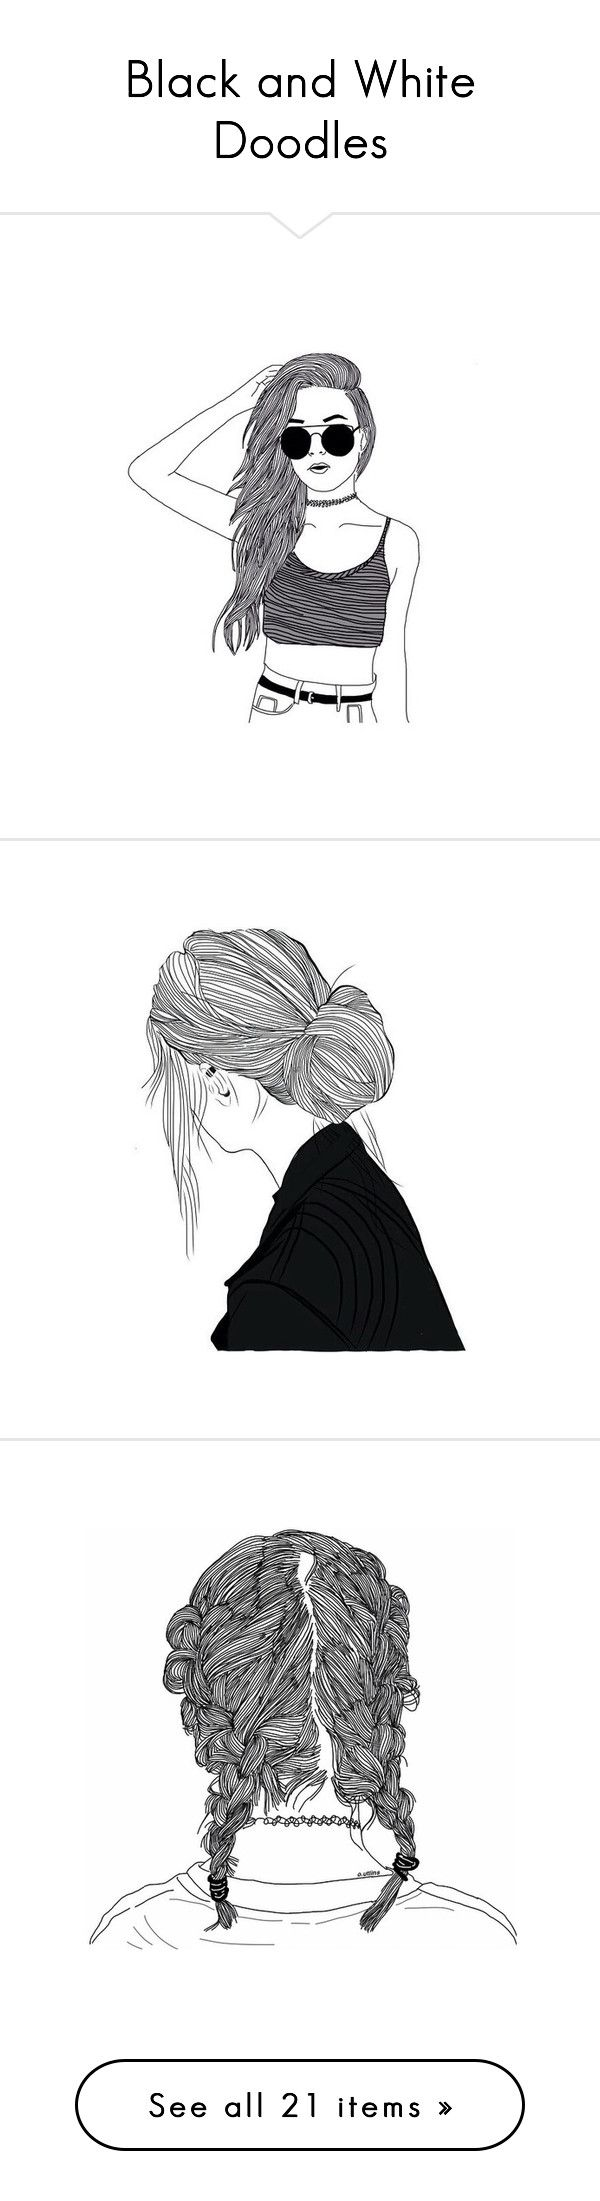 """Black and White Doodles"" by jabp ❤ liked on Polyvore featuring fillers, drawings, doodles, art, outlines, doodle fillers, backgrounds, text, phrase and quotes"